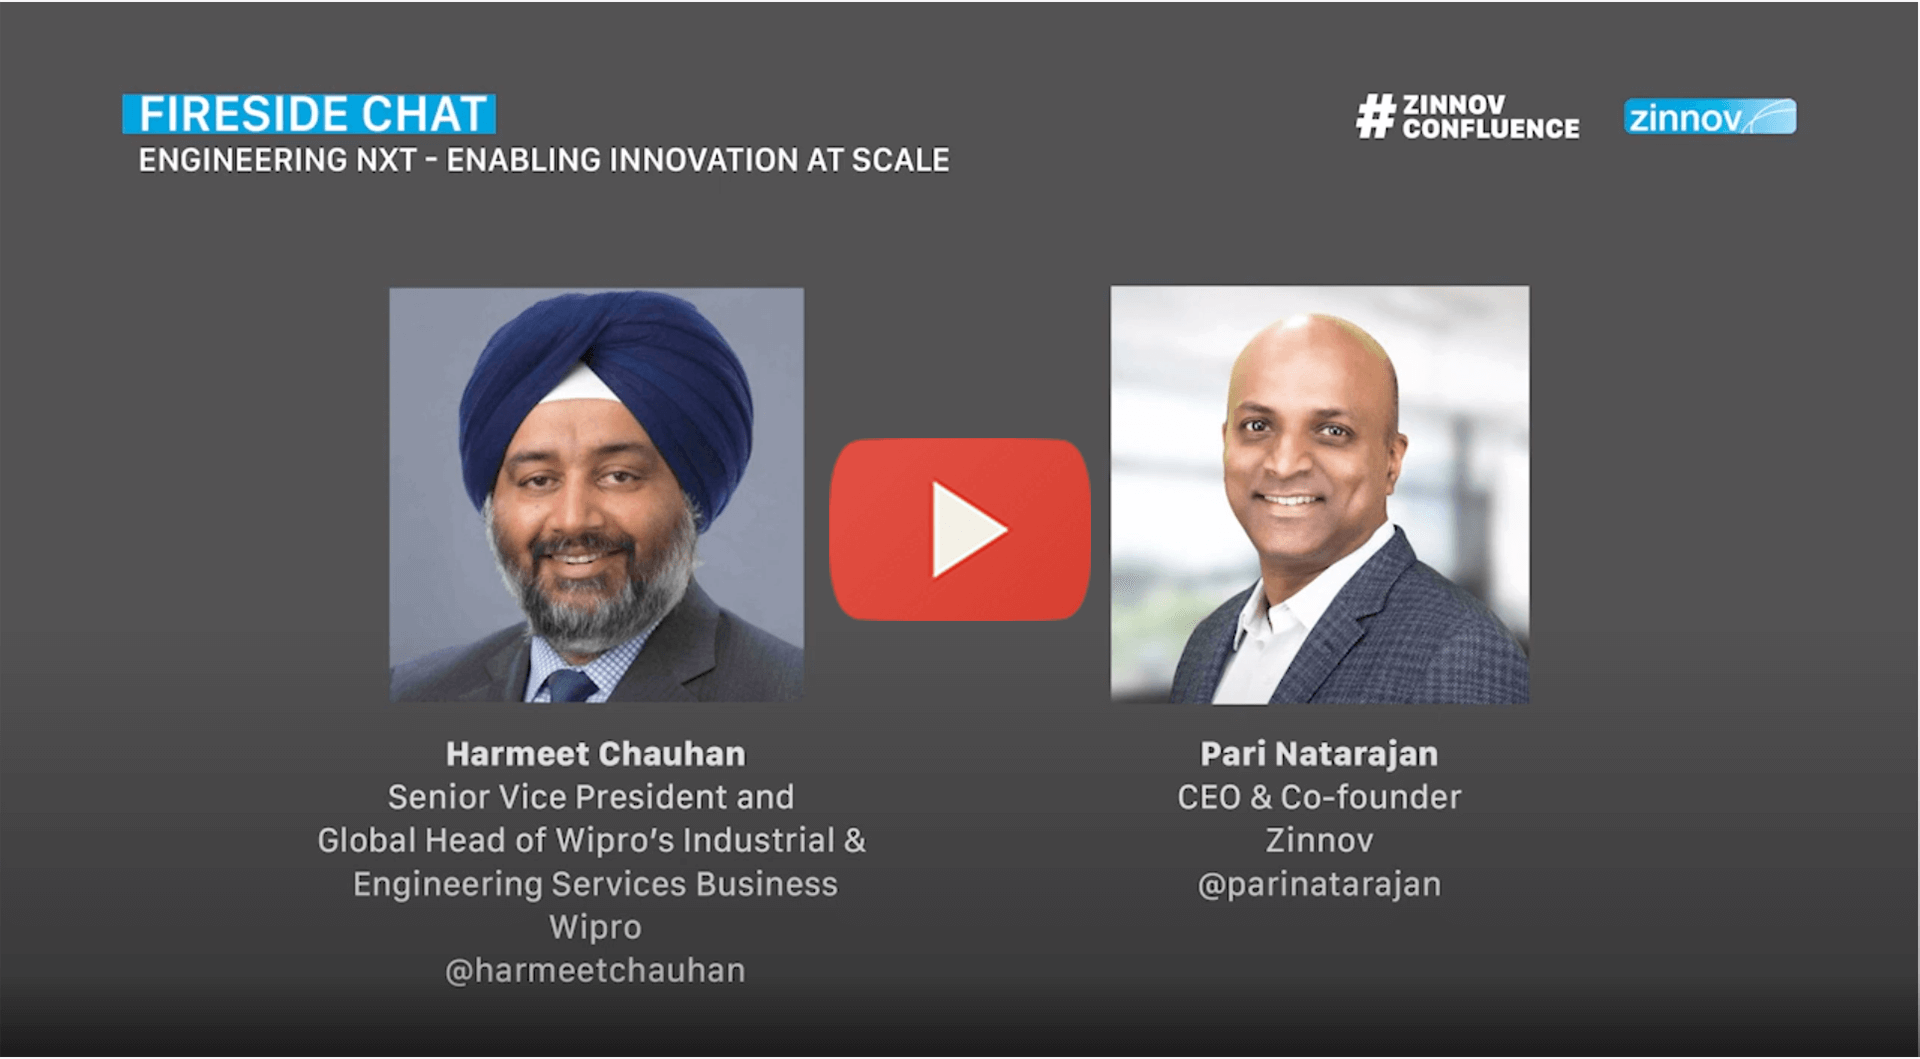 Fireside Chat | EngineeringNXT - Enabling Innovation At Scale | Zinnov Confluence